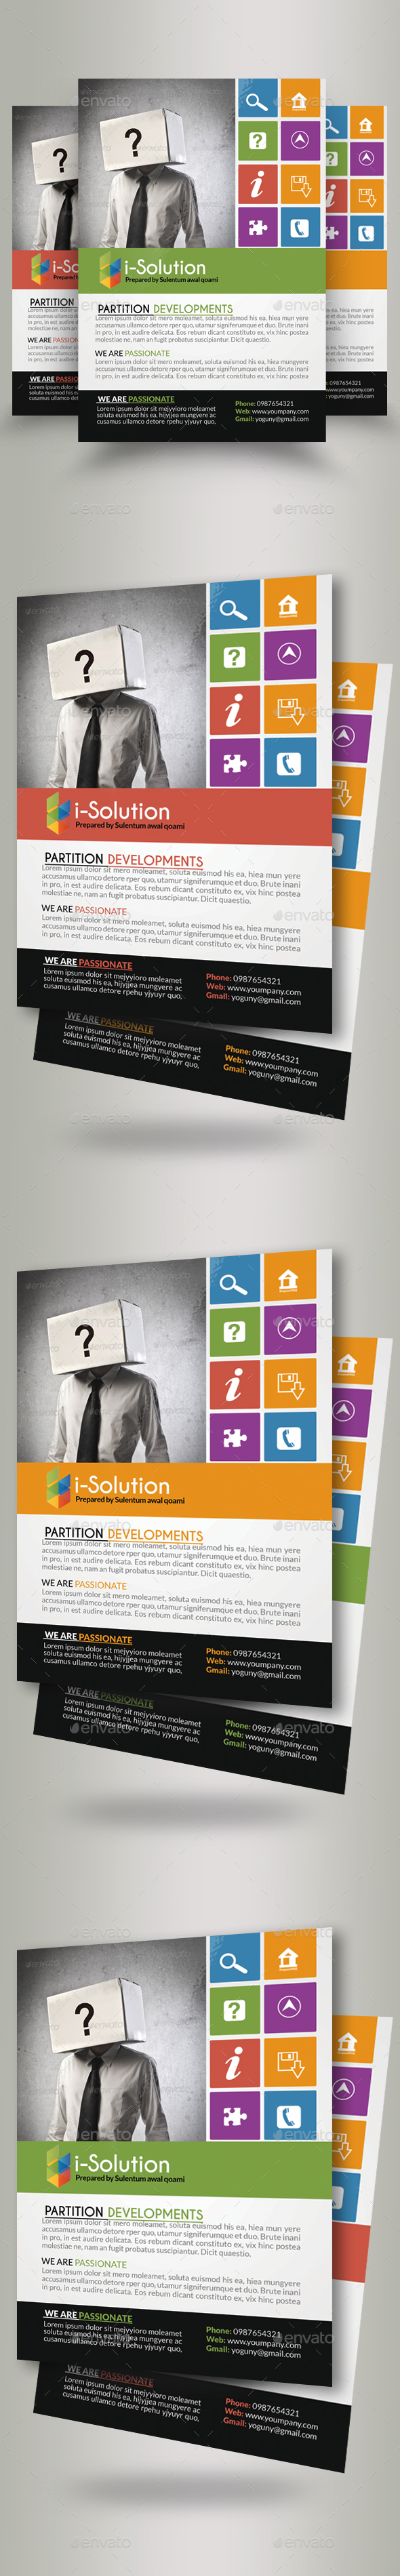 Business Identification Flyers - Corporate Flyers